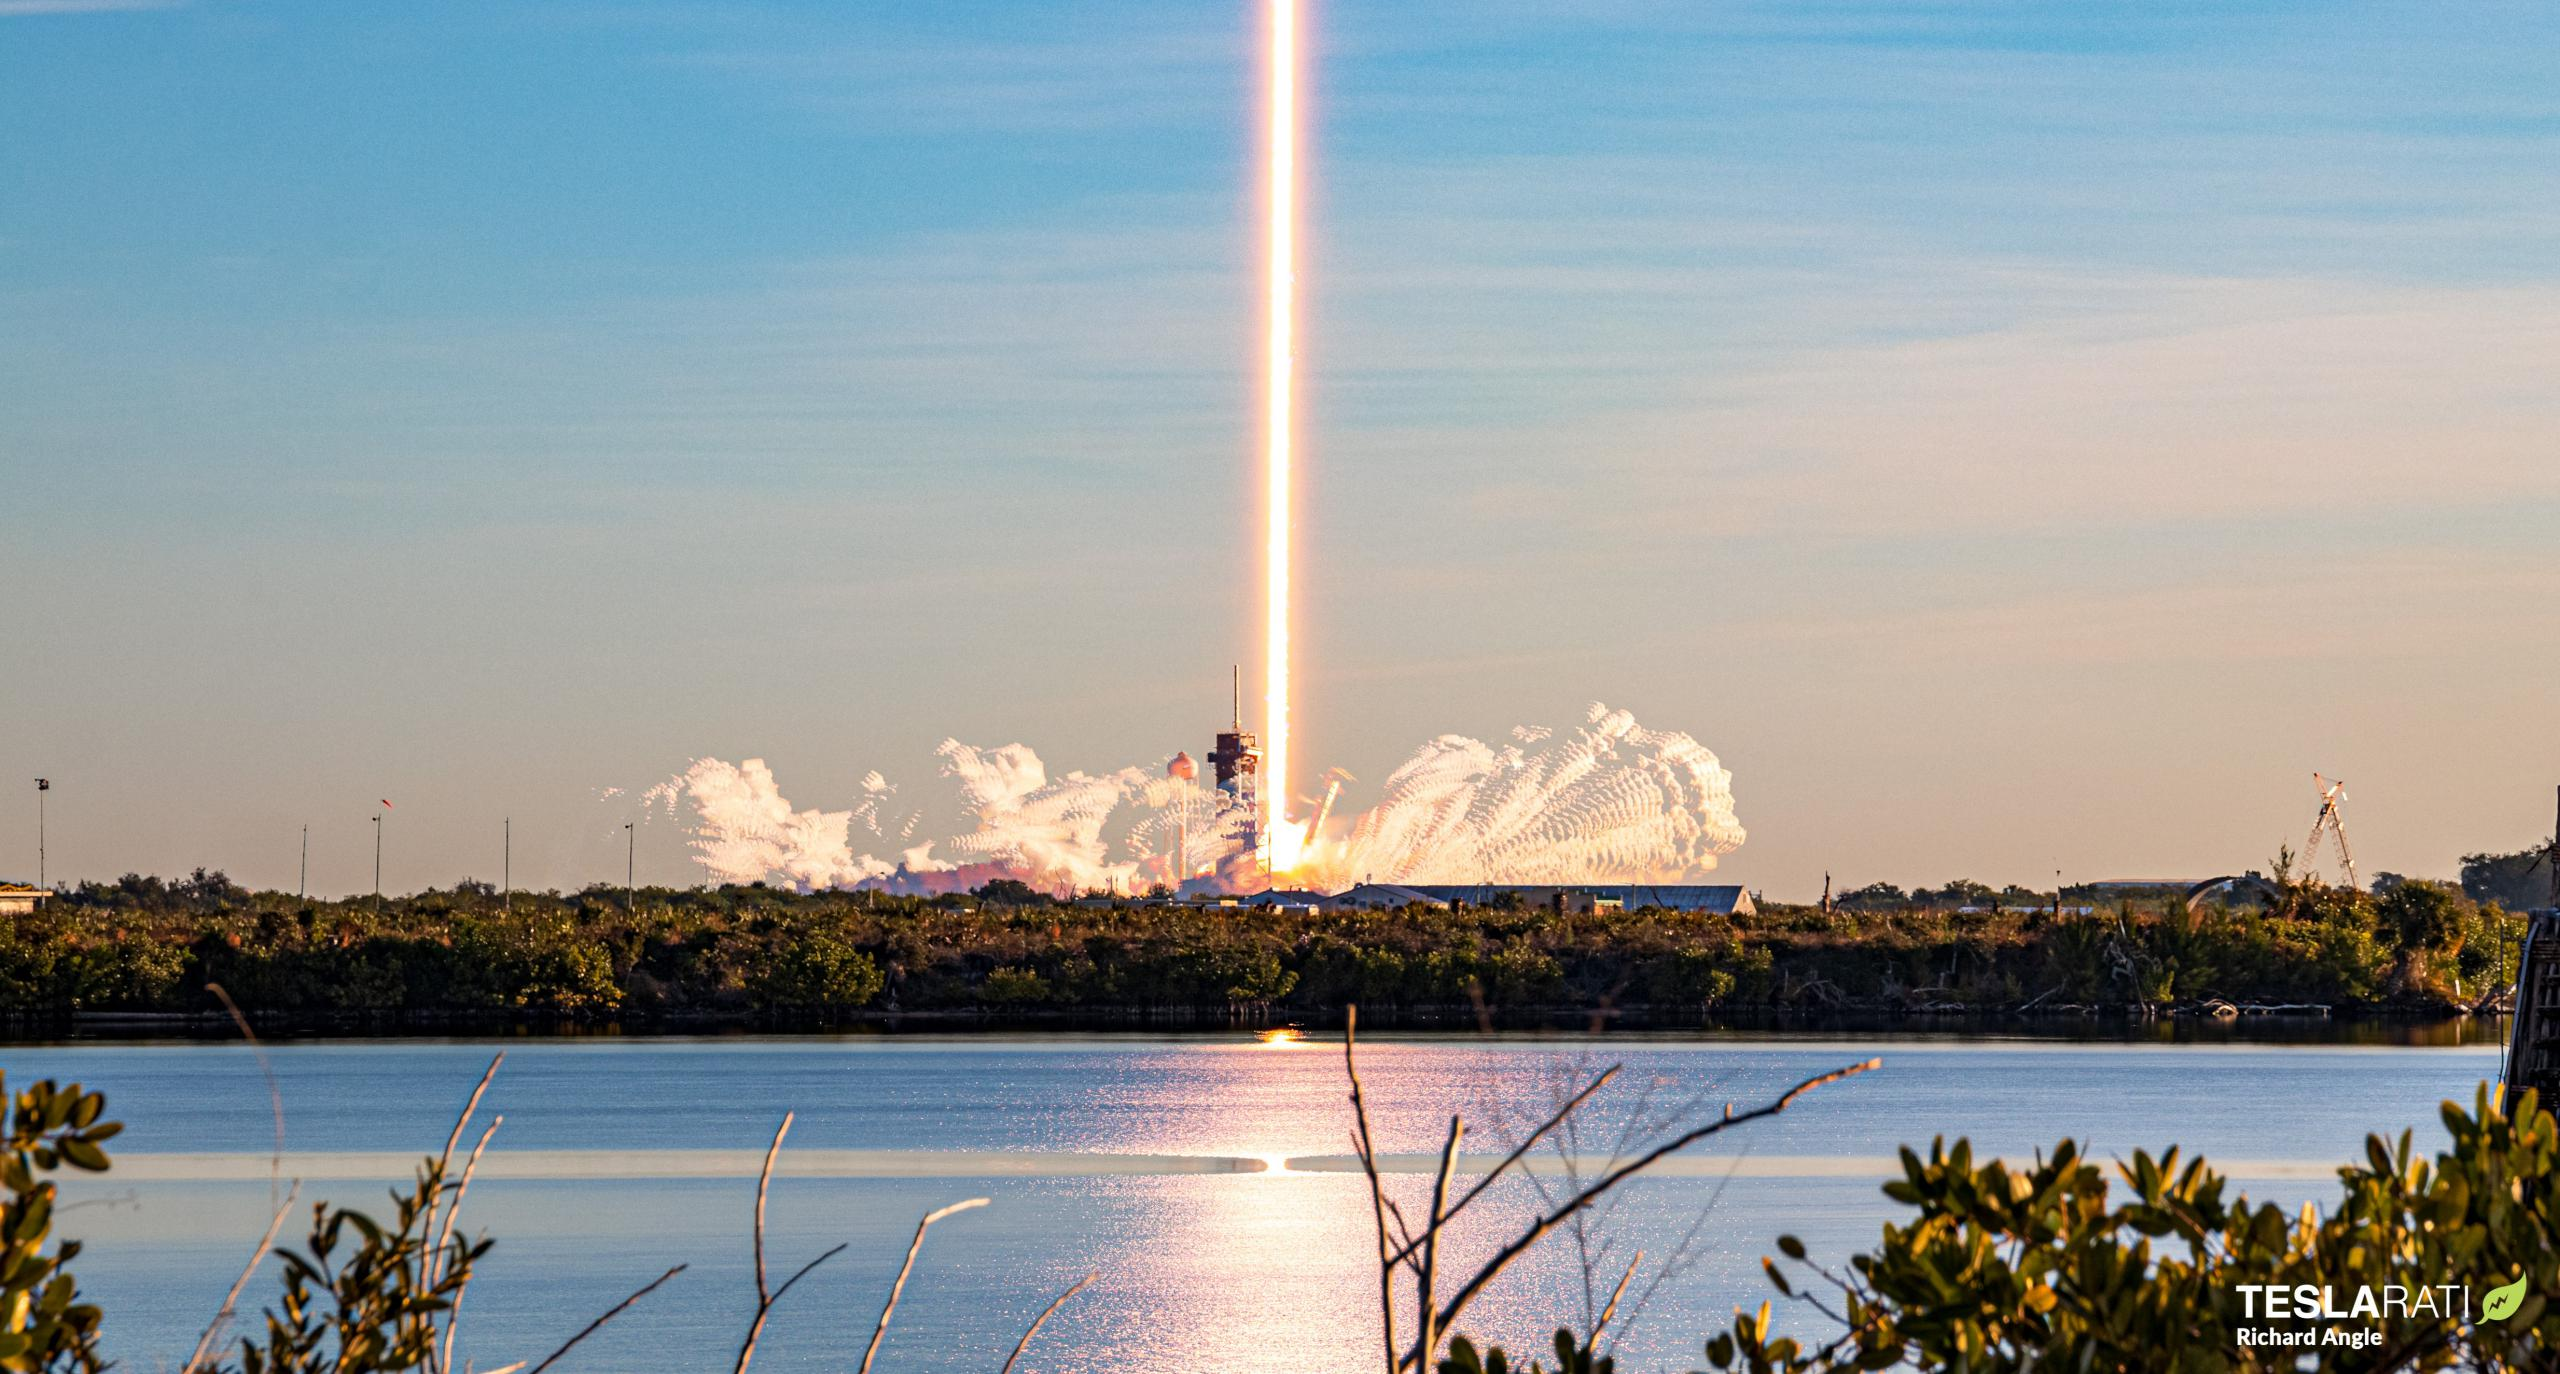 Starlink-16 Falcon 9 B1051 39A 012021 (Richard Angle) launch streak 1 crop (c)